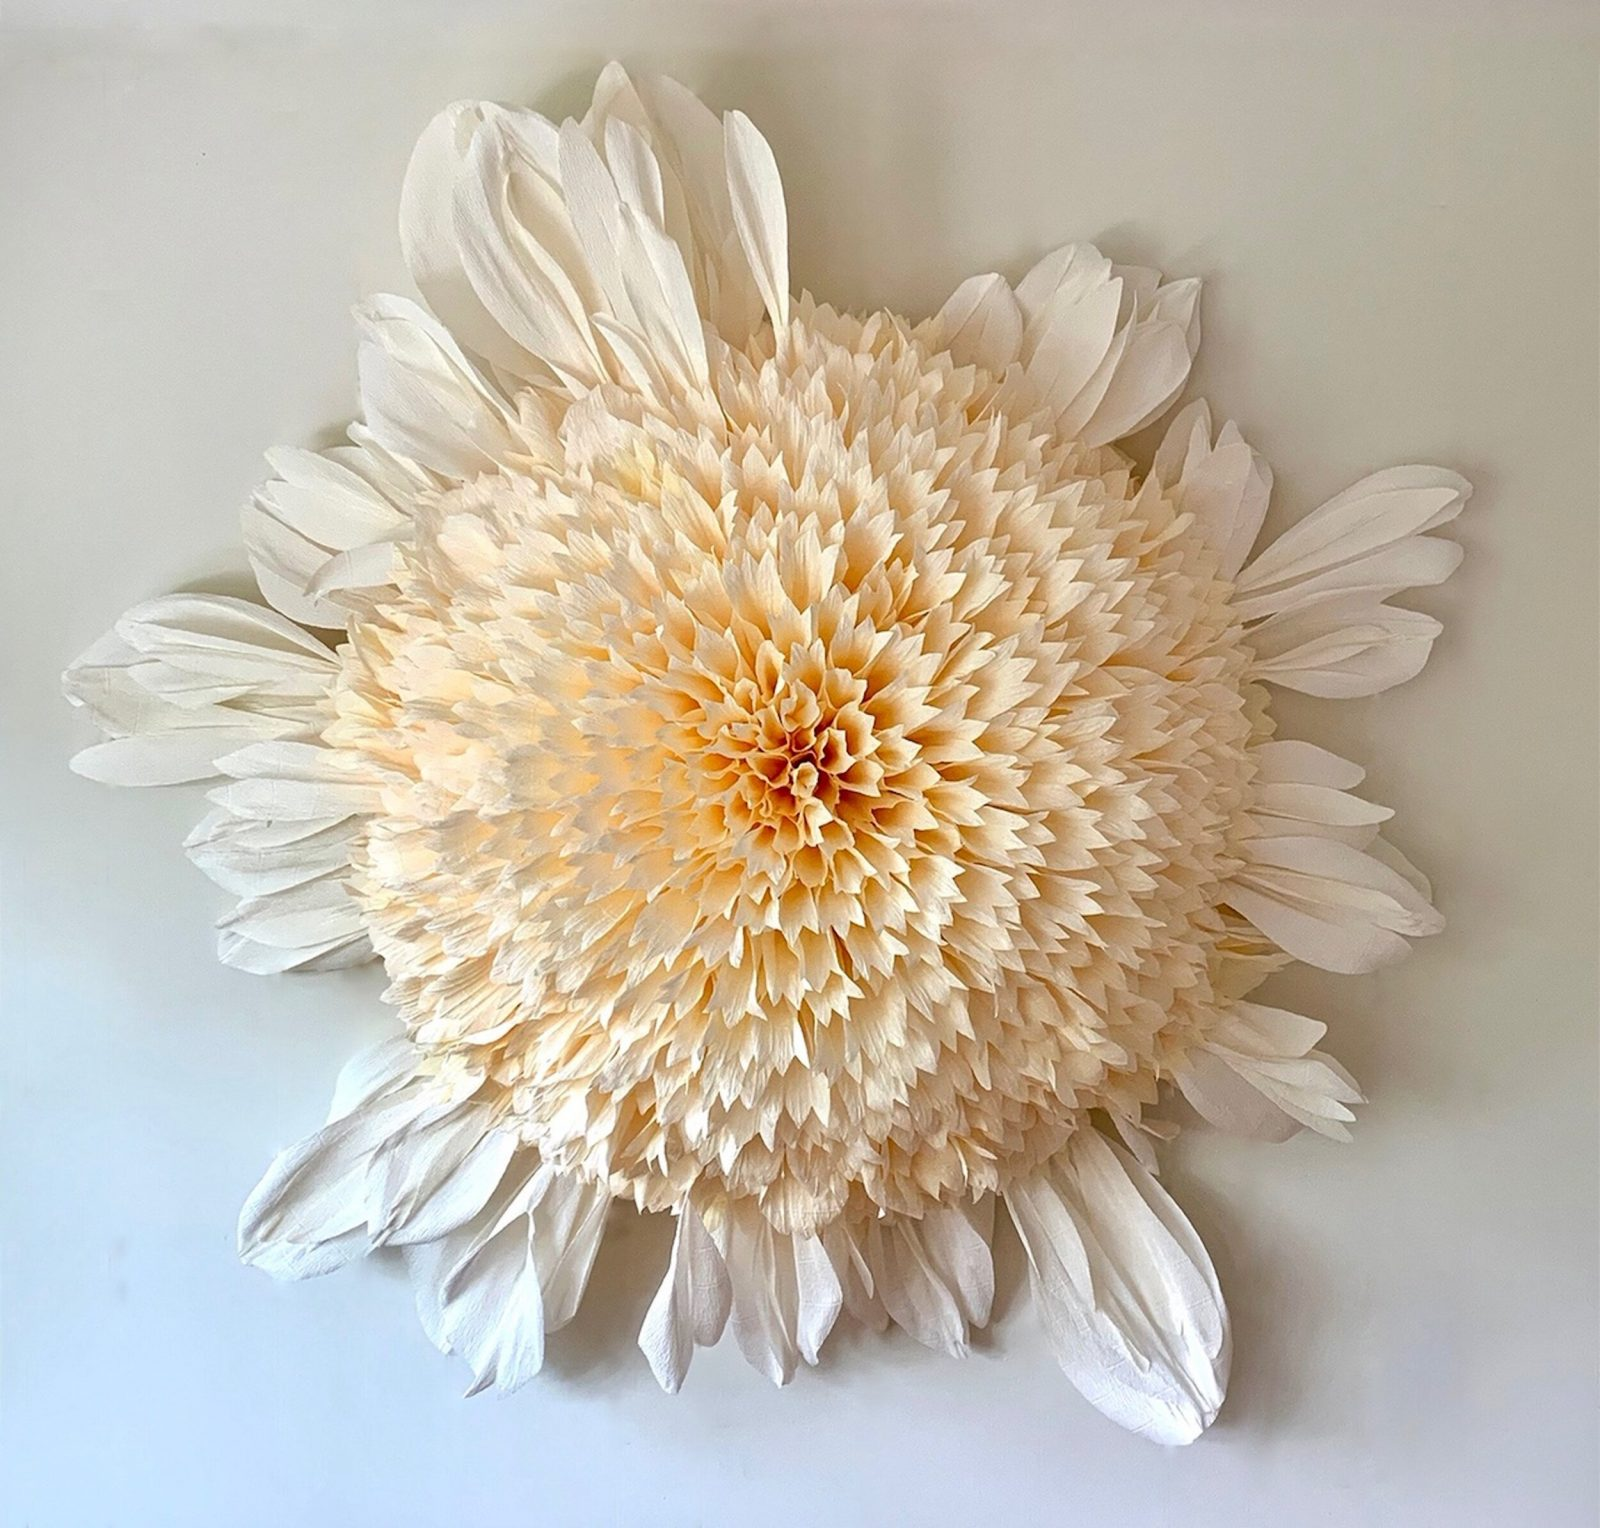 Hypnotizing Botanical Paper Sculptures by Tiffanie Turner